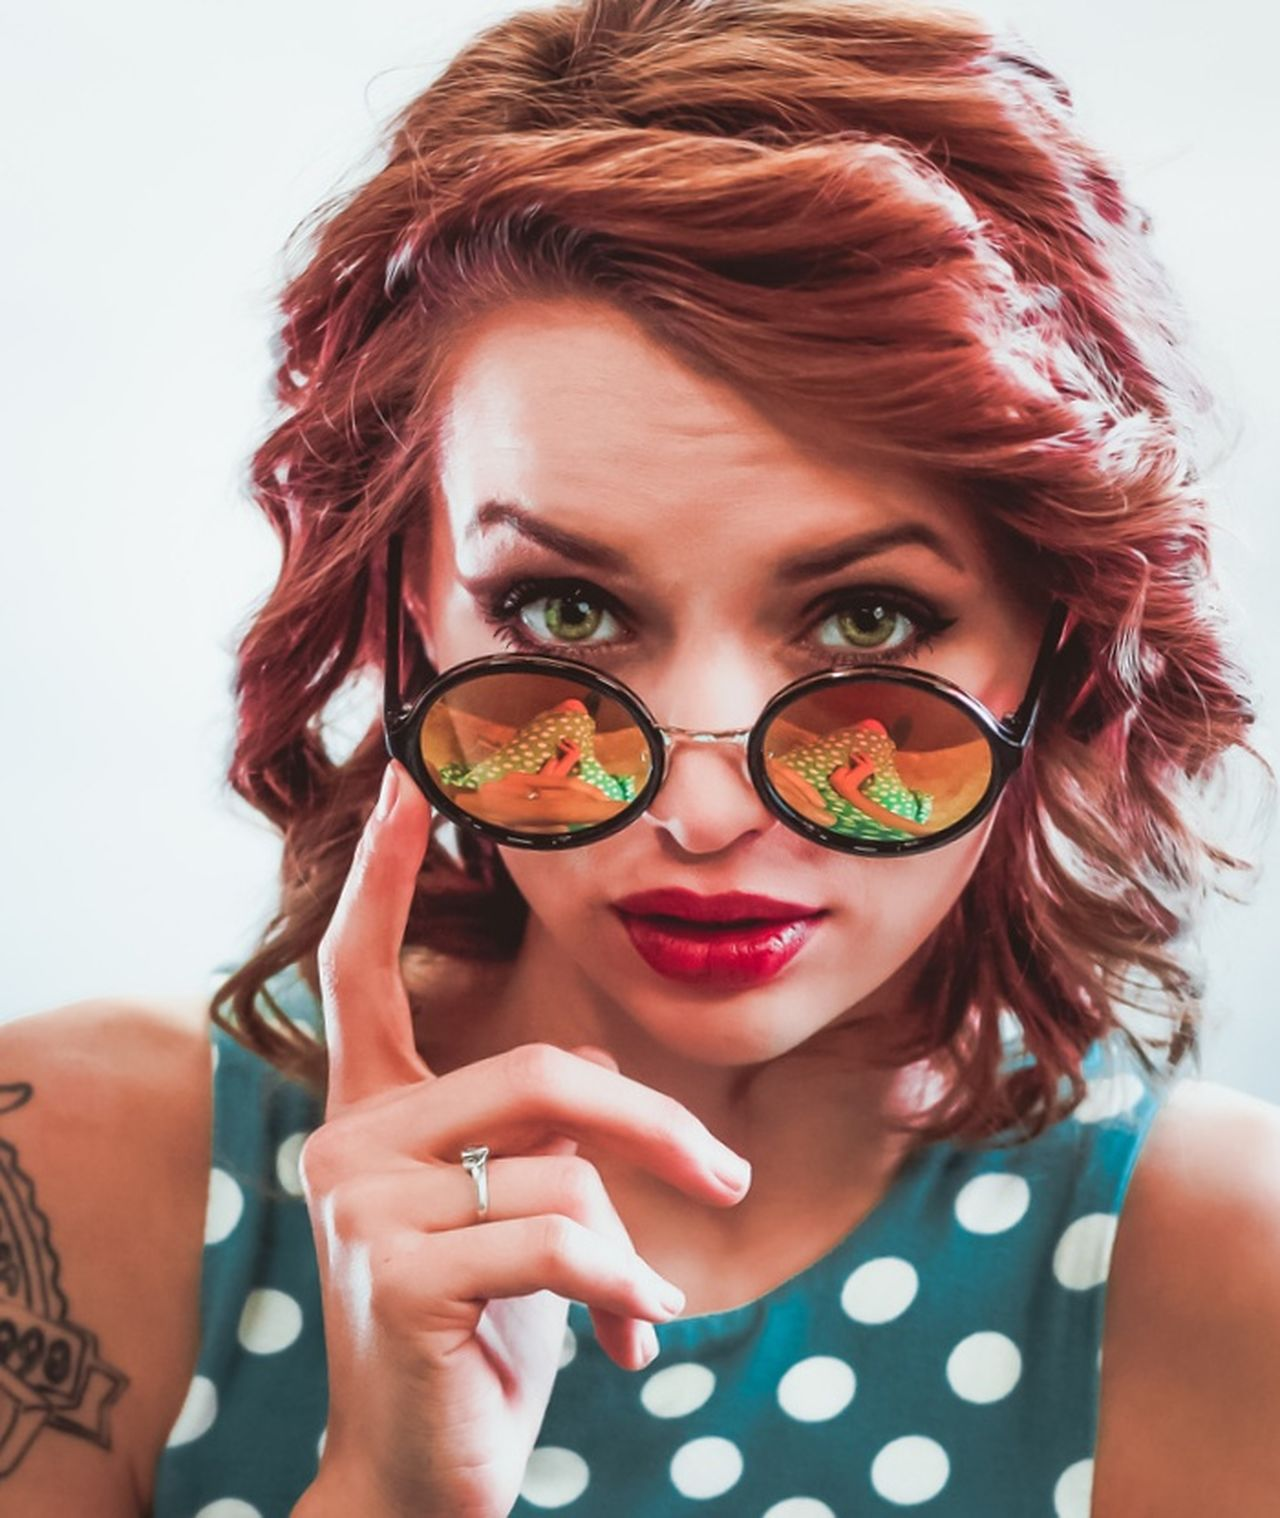 Reflections. Redhead Portrait Eyeglasses  Polka Dot Headshot Beauty Hipster - Person Beautiful Woman Women Young Women One Woman Only Reflection_collection Reflection Vintage Portrait Of A Woman Seductive Lipstick Colorful Color Palette Color Portrait Colour Of Life Colorsplash Sunglasses One Young Woman Only The Portraitist - 2017 EyeEm Awards